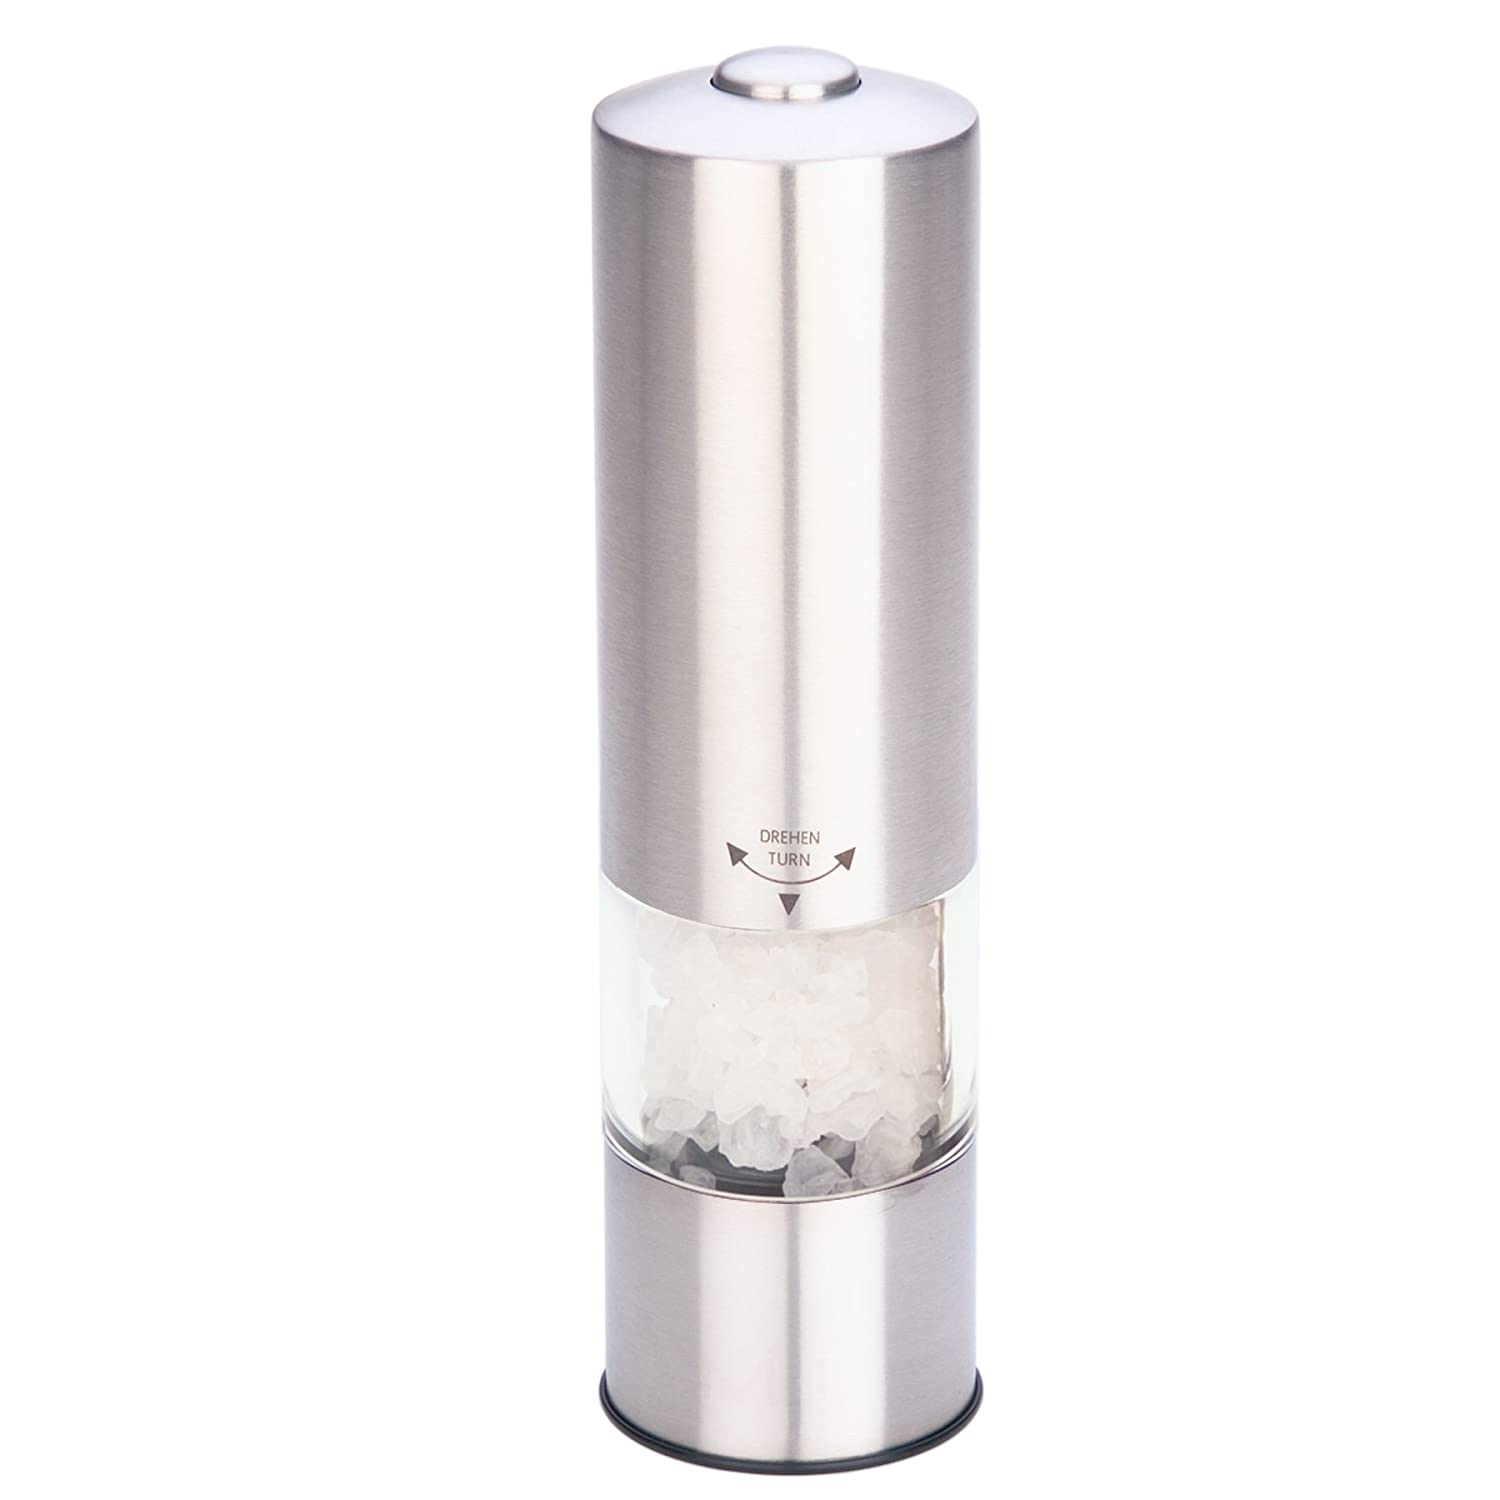 MIU France Stainless Steel Battery-Operated Salt Mill with LED Light 90604